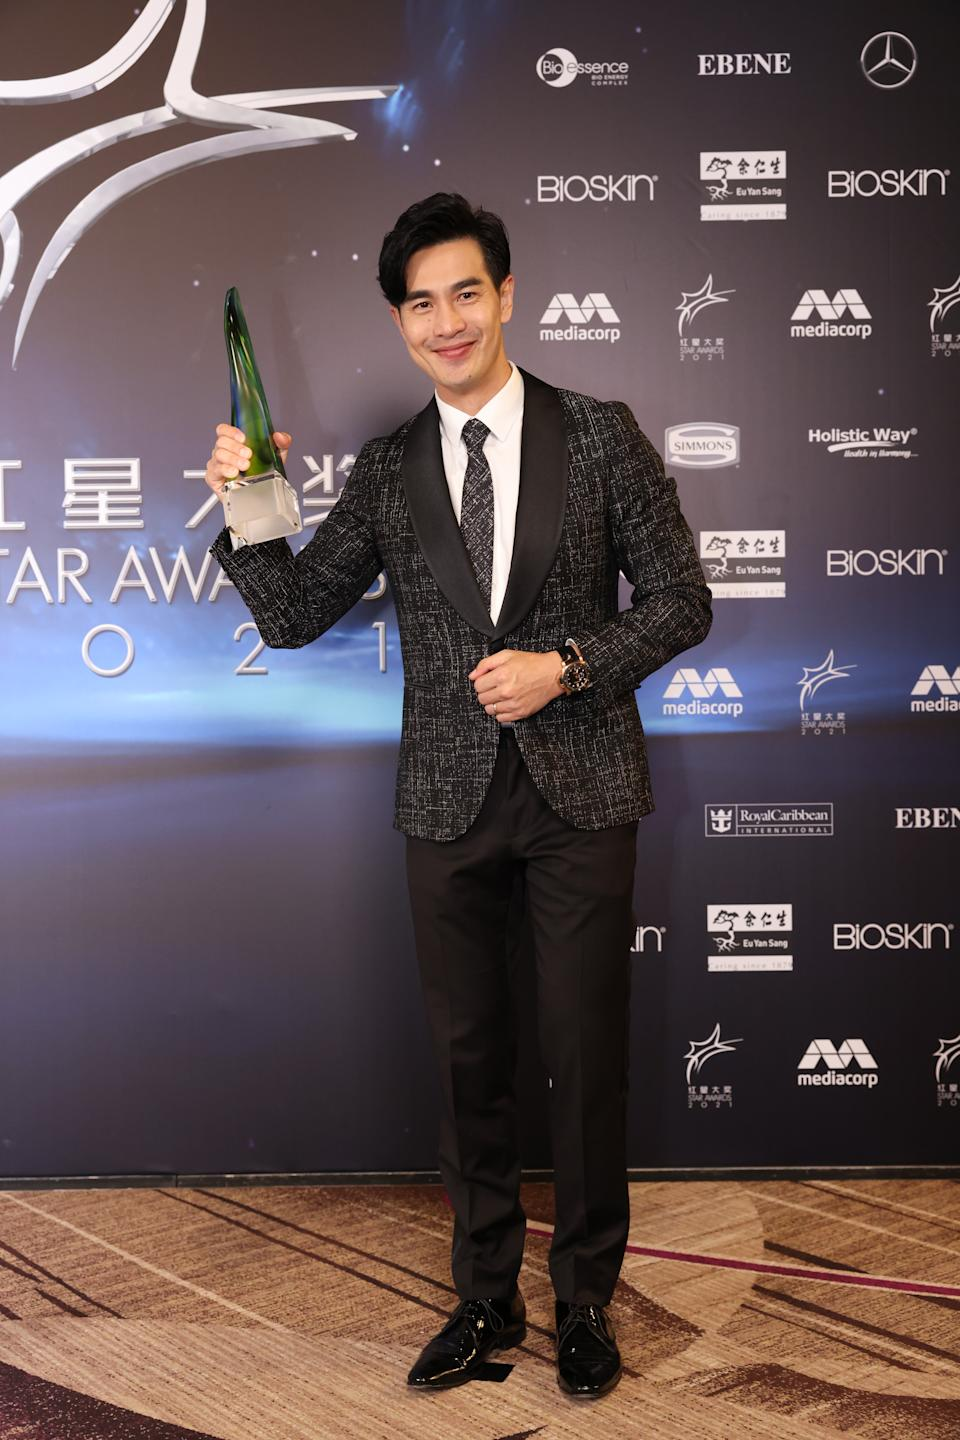 Pierre Png at Star Awards held at Changi Airport on 18 April 2021. (Photo: Mediacorp)